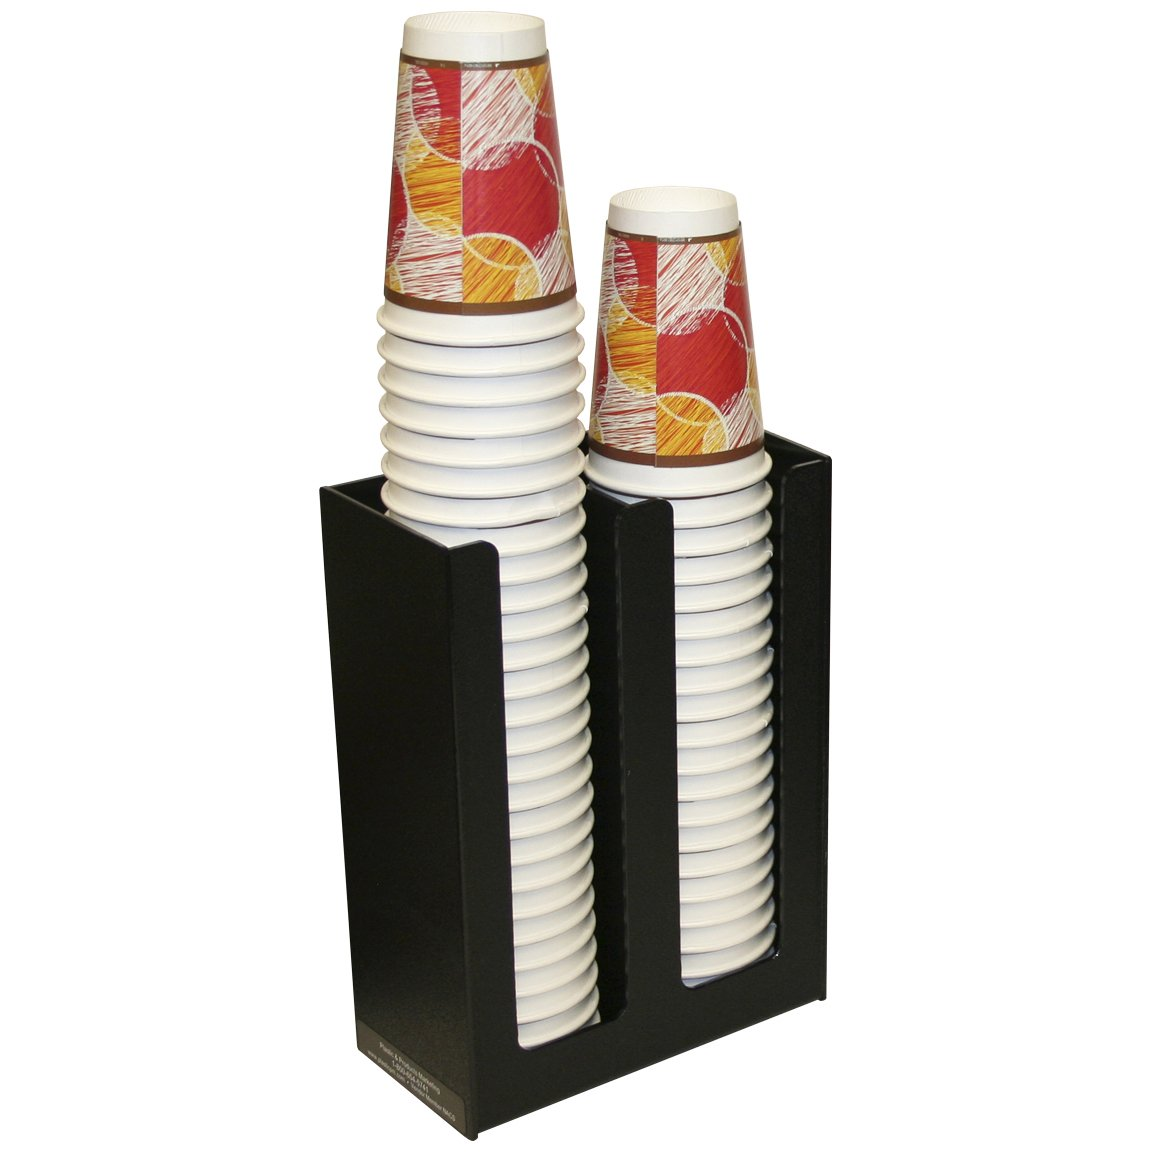 Coffee Lids & or Cup Holder, 2 Columns 12''high. Handsome Textured Black and Easy to Clean. Virtually Non-breakable. Made in the USA! by PPM.